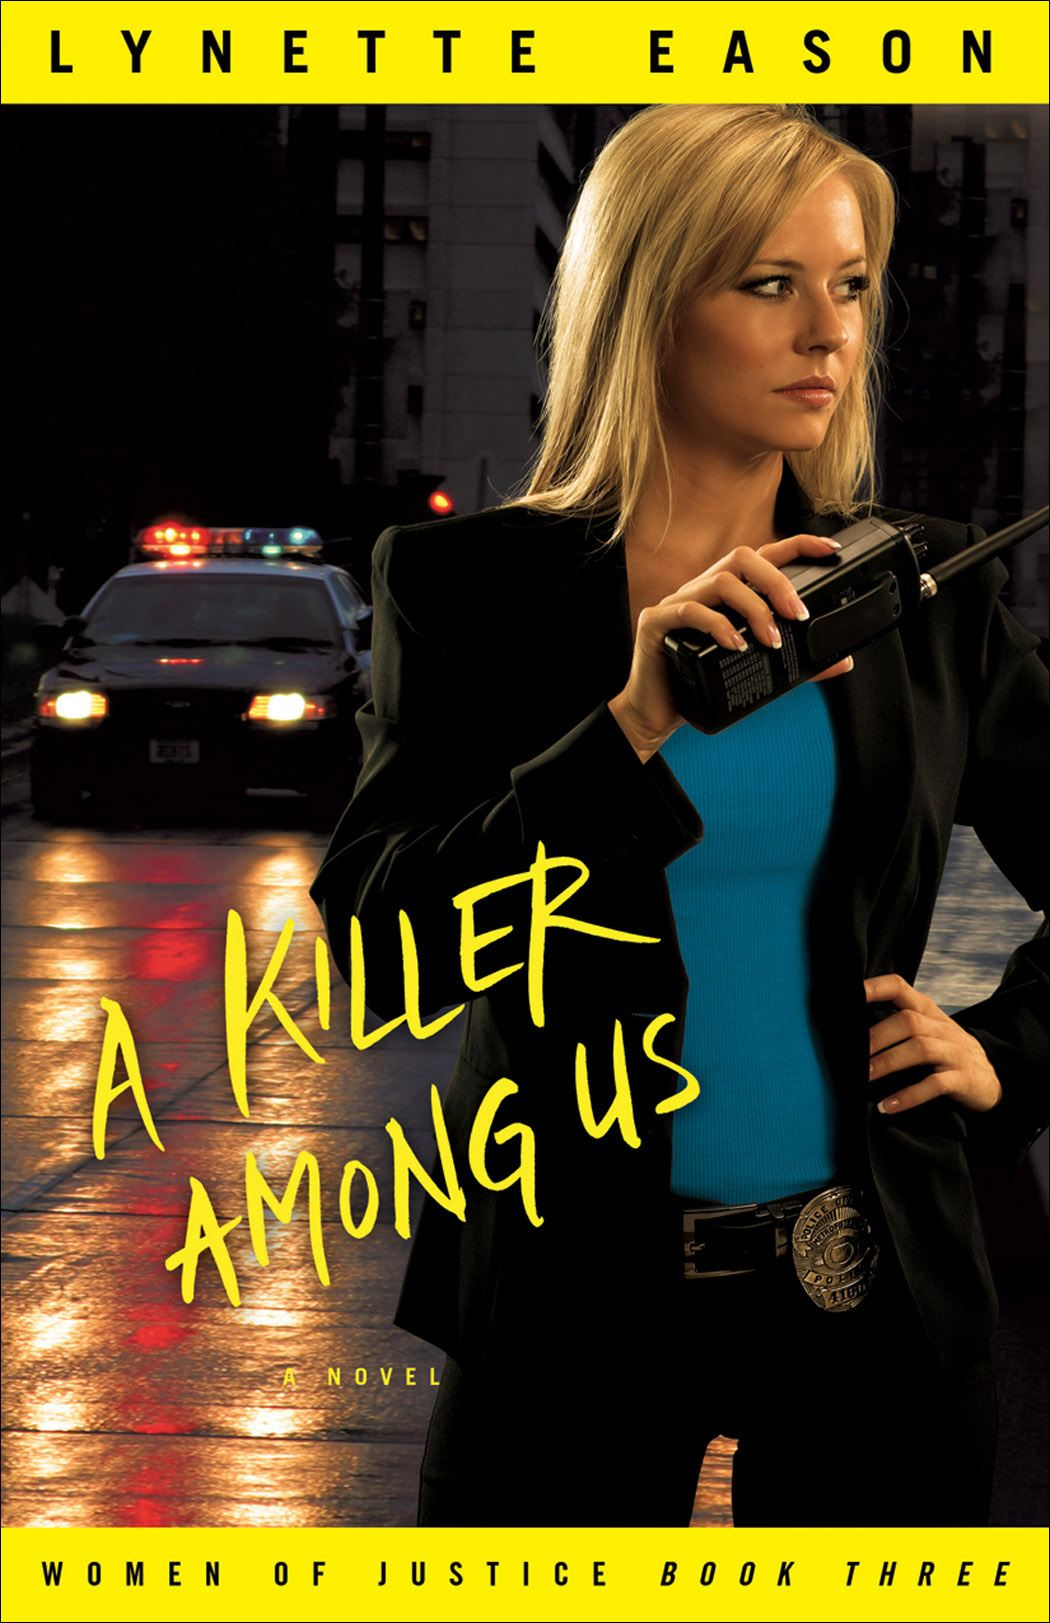 Killer Among Us, A (Women of Justice Book #3)